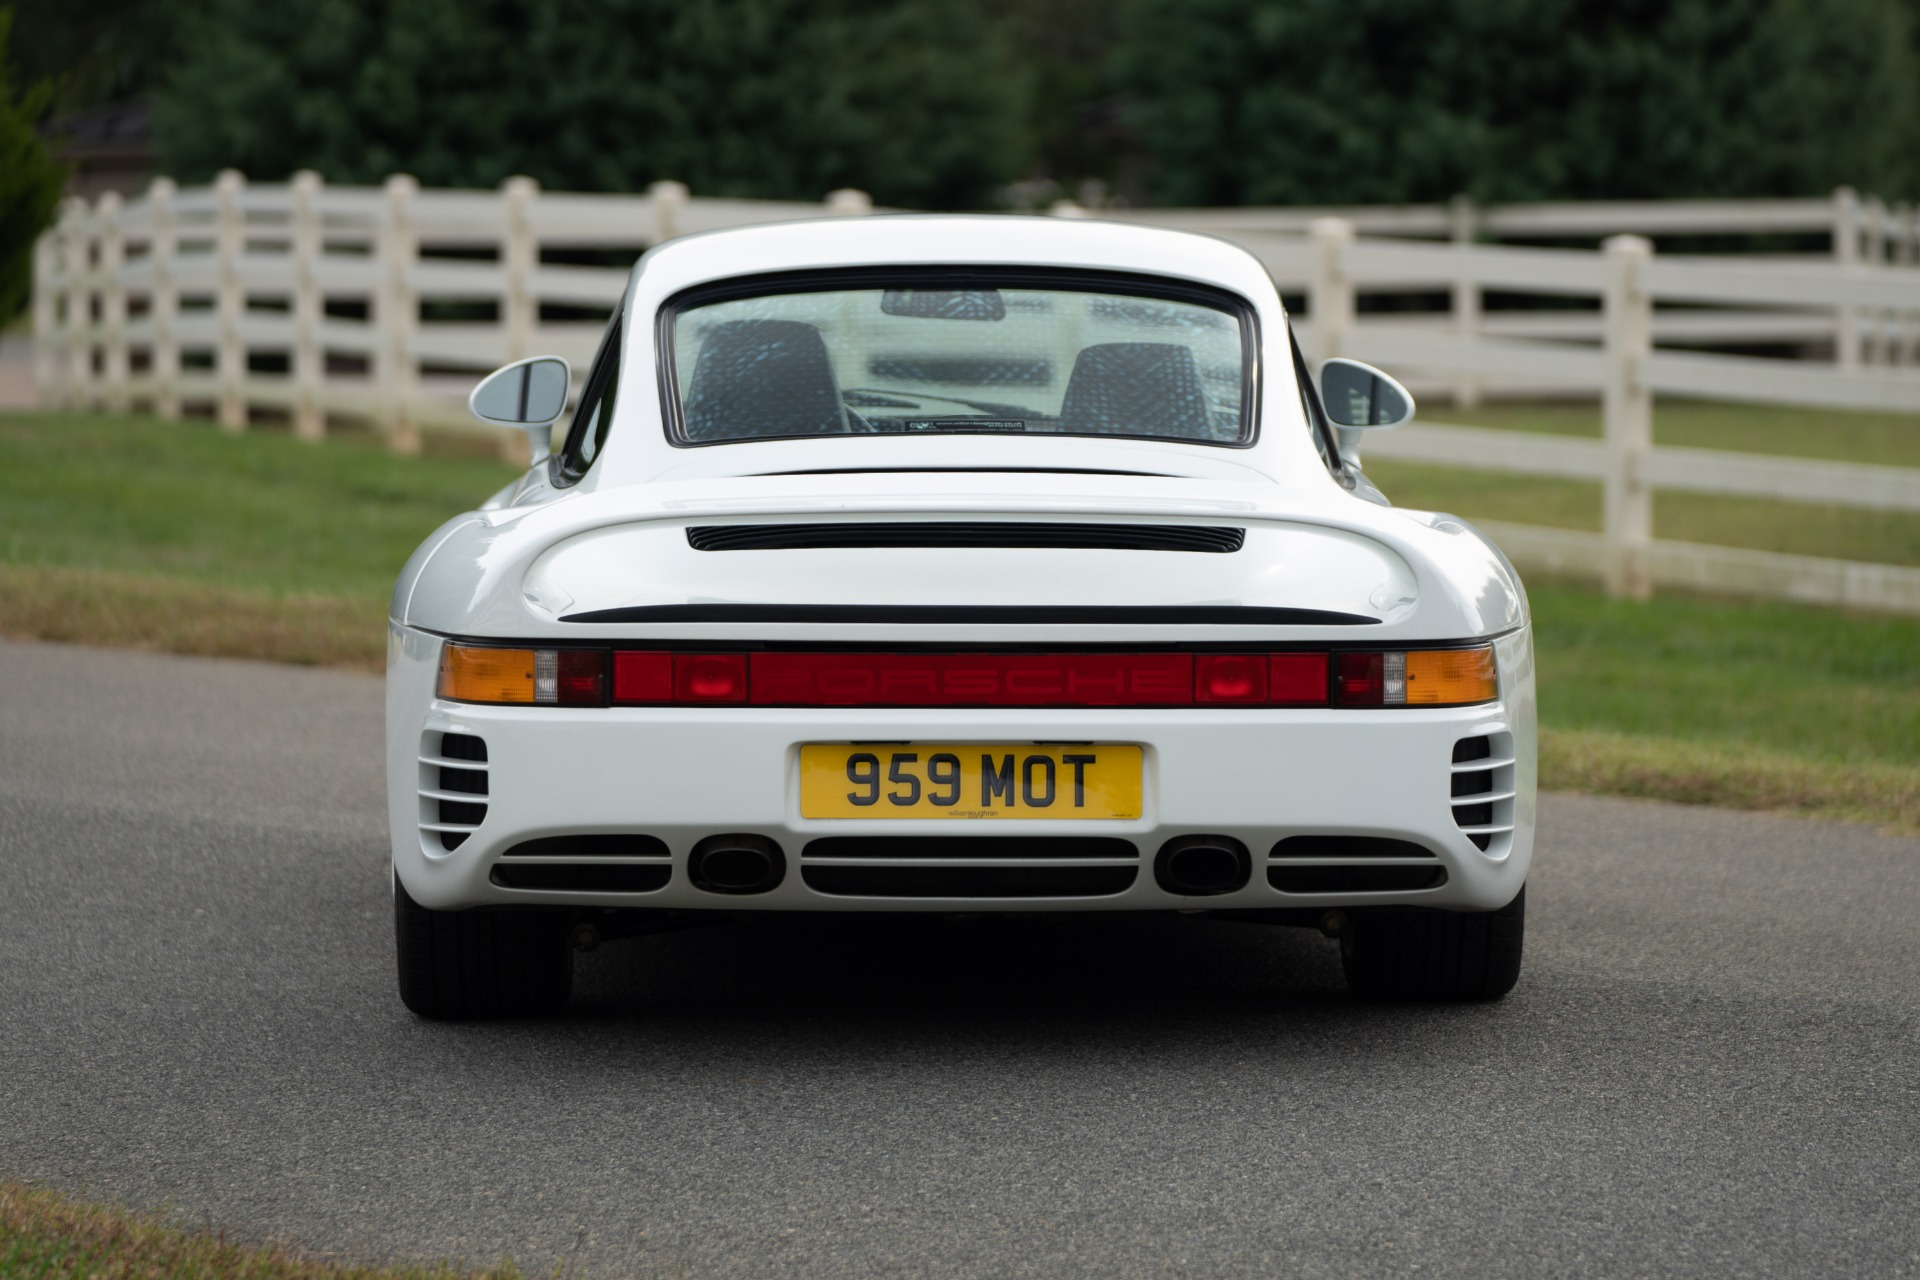 Used 1988 Porsche 959 KOMFORT COUPE / AWD / 6-SPEED MANUAL / ORIGINAL SUPERCAR for sale $1,399,999 at Formula Imports in Charlotte NC 28227 30